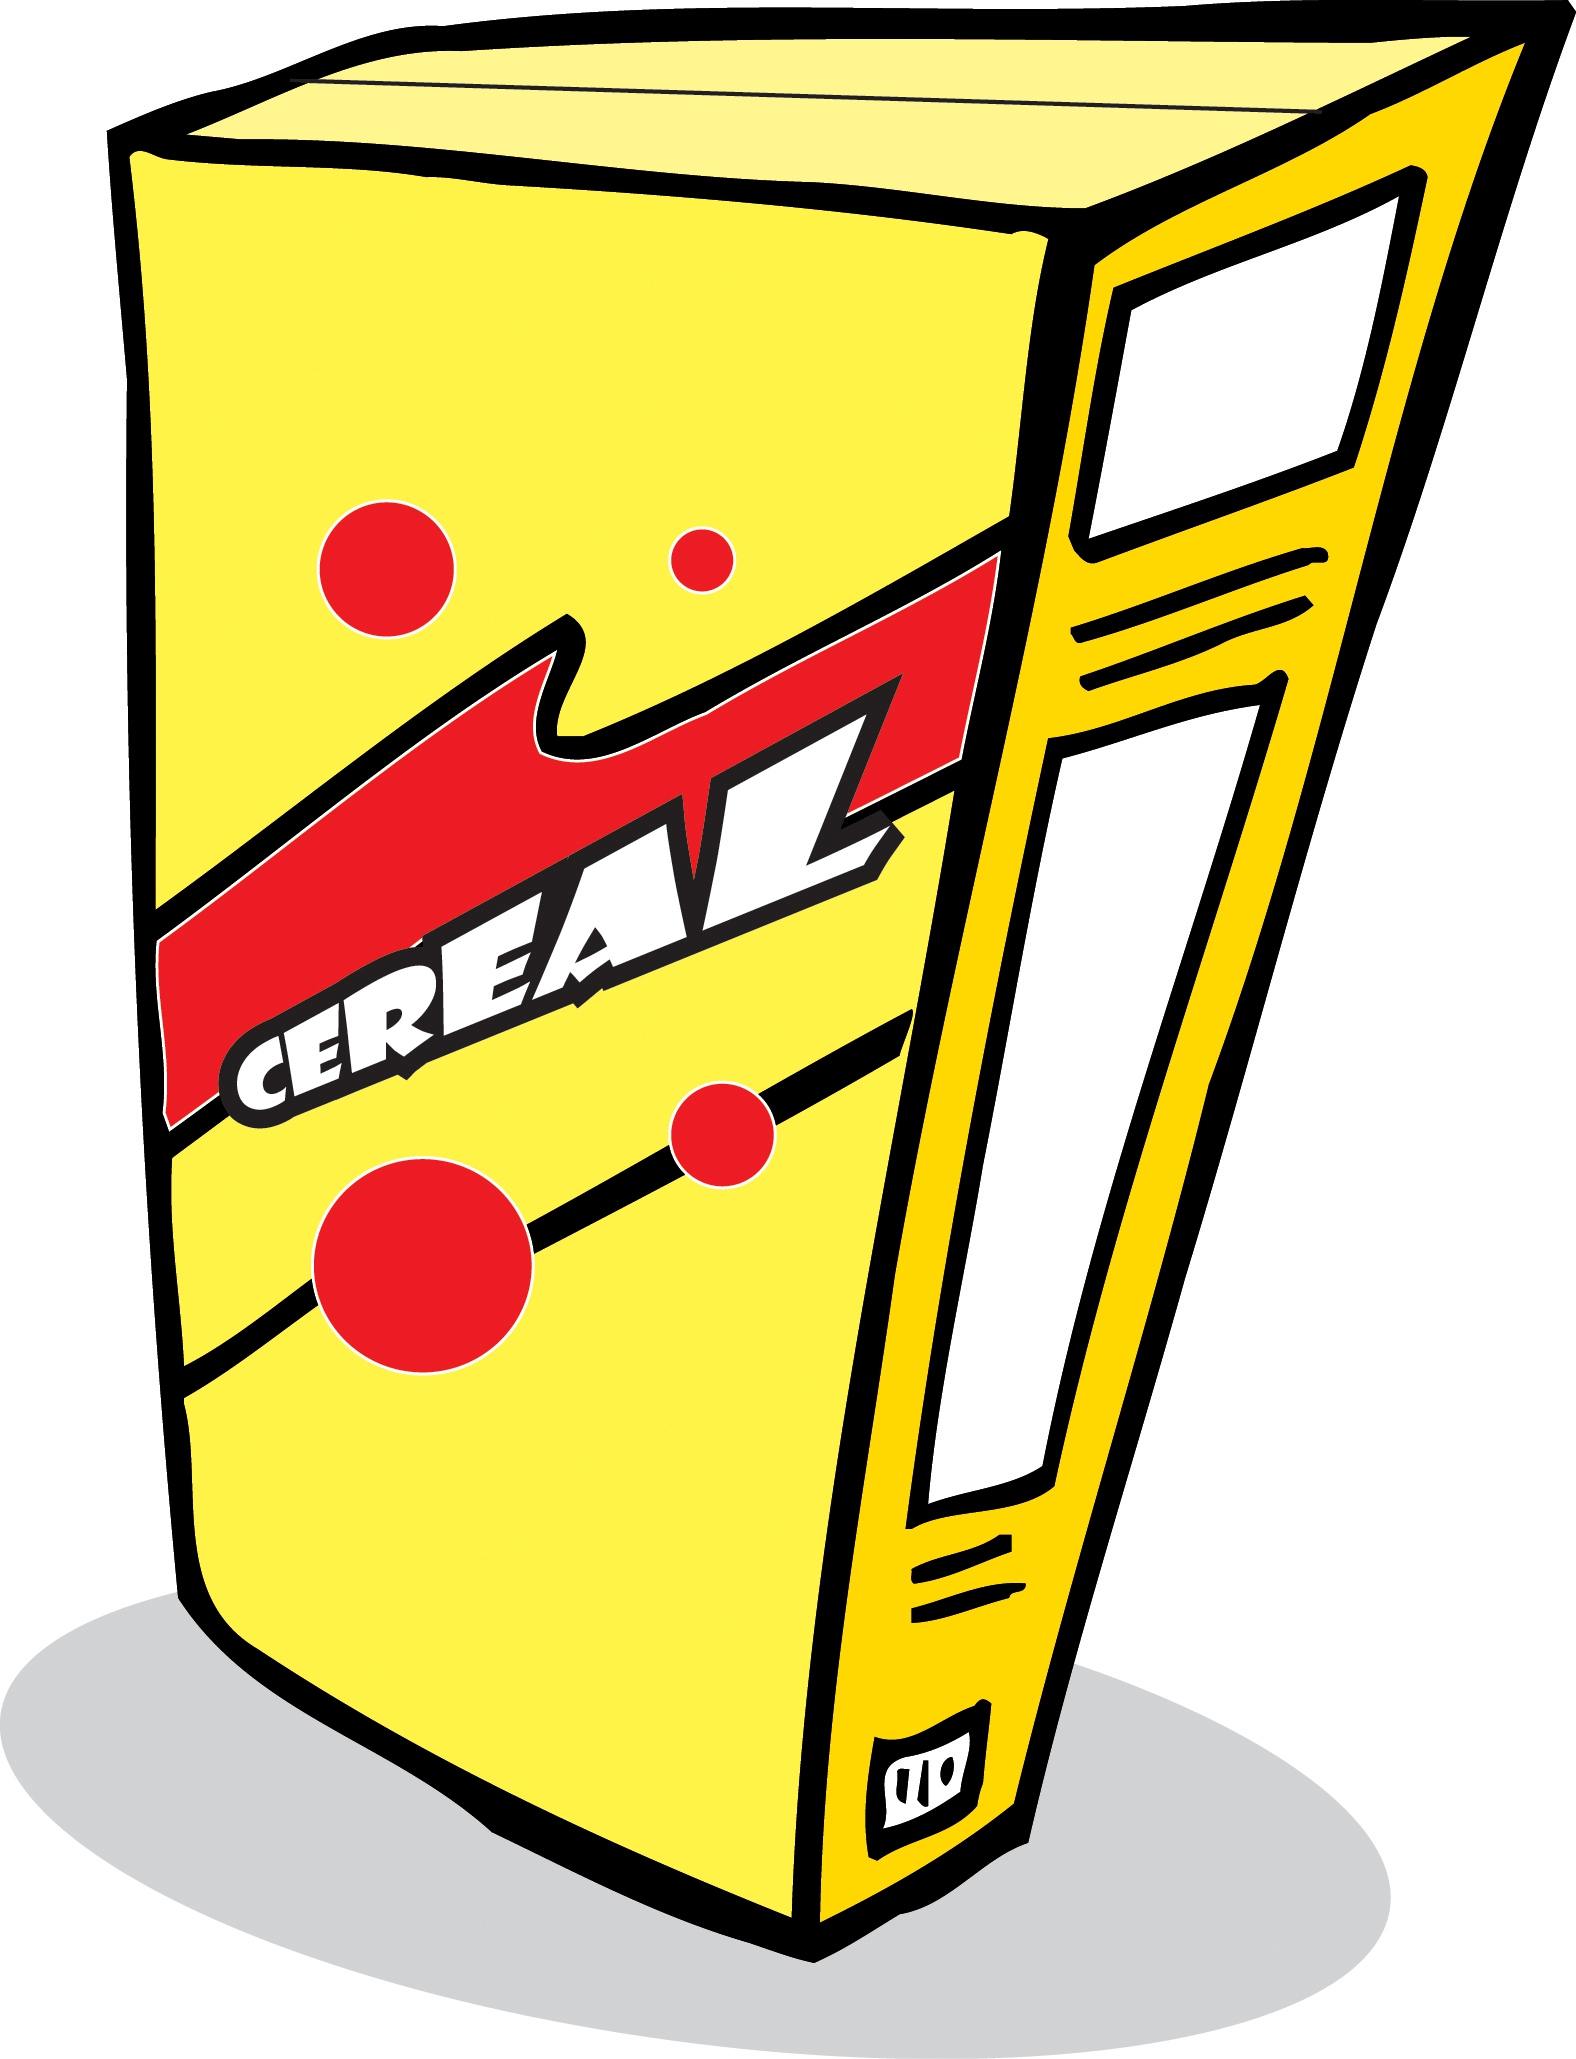 Cheerios Cereal Box Clipart#2083690.